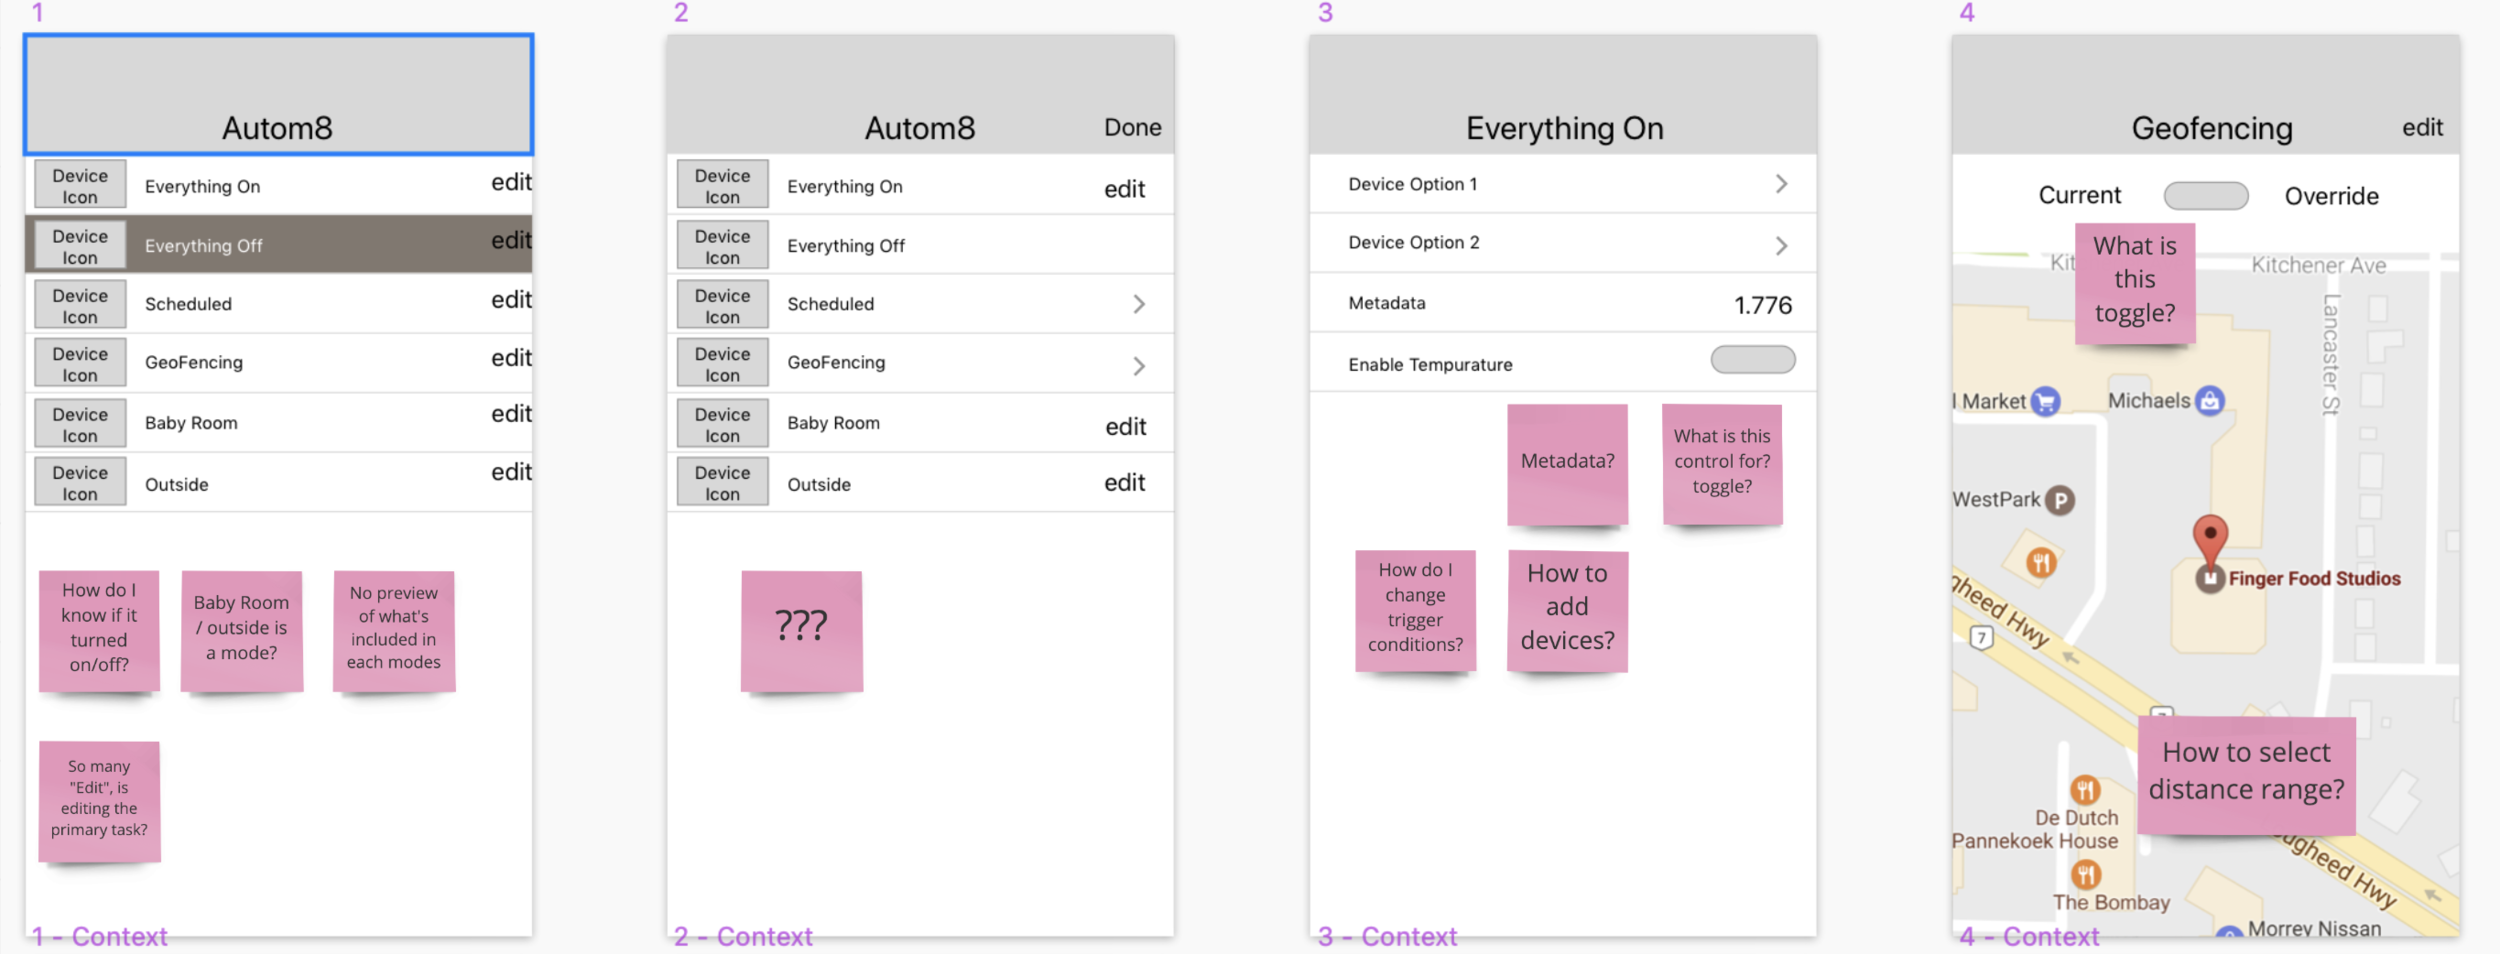 Wireframes overloaded with options